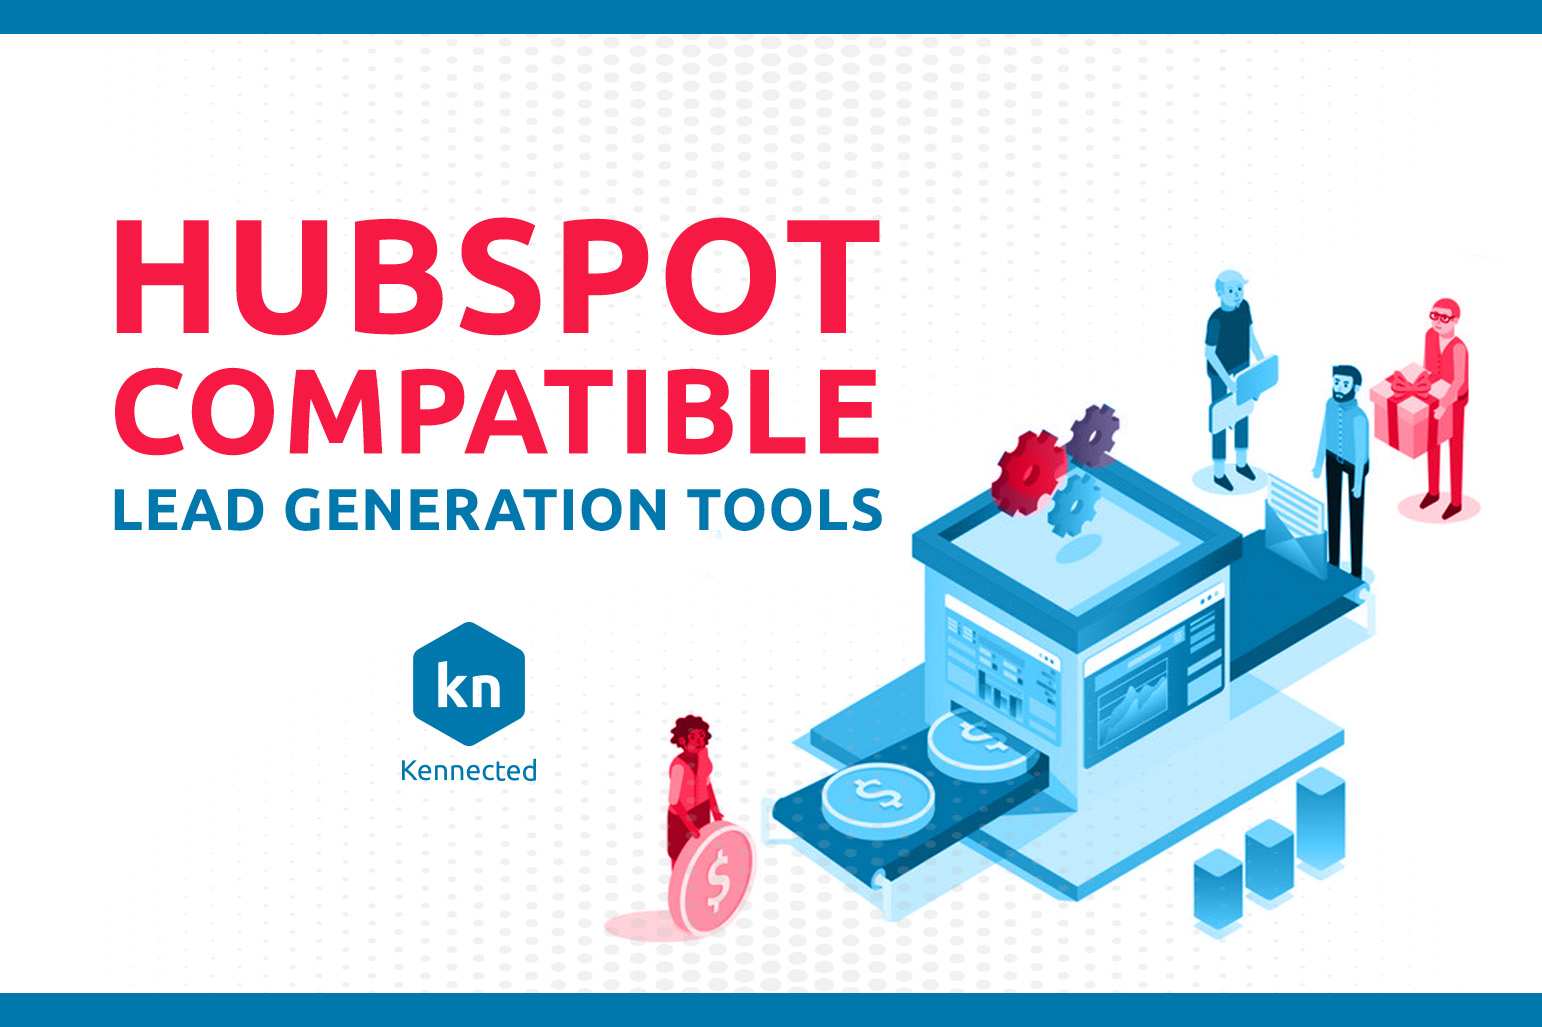 Hubspot Compatible Lead Generation Tools